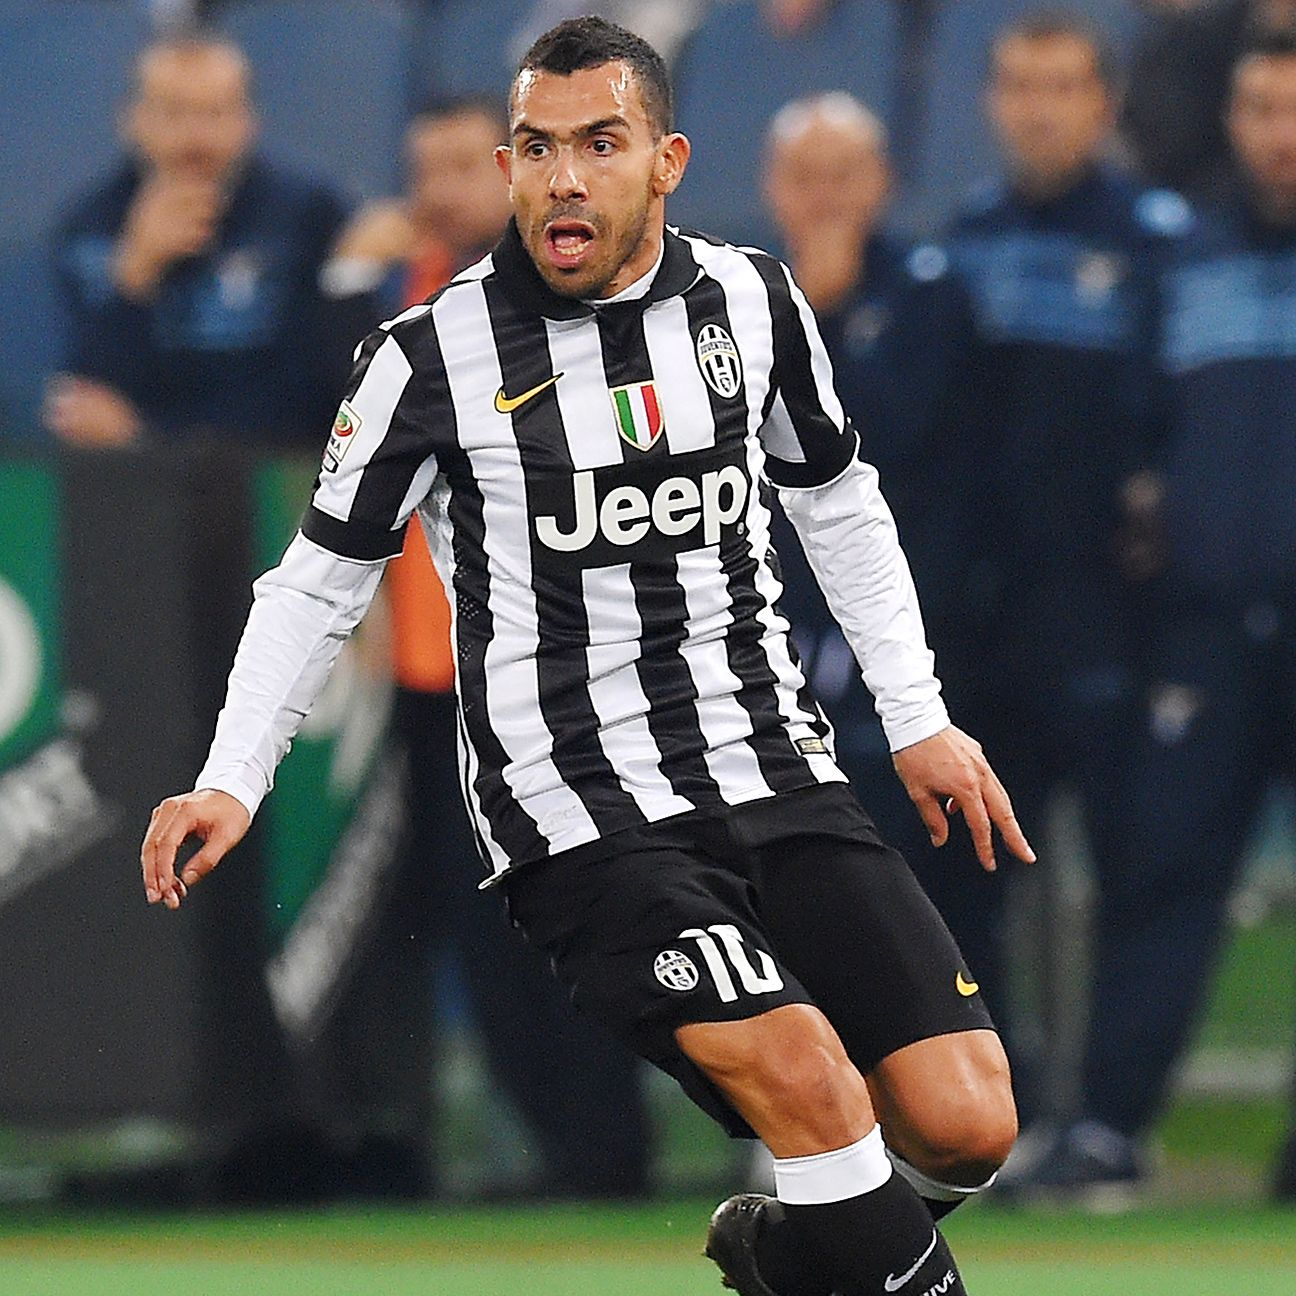 Carlos Tevez and Juventus will be up against a stingy defence when they face Torino.